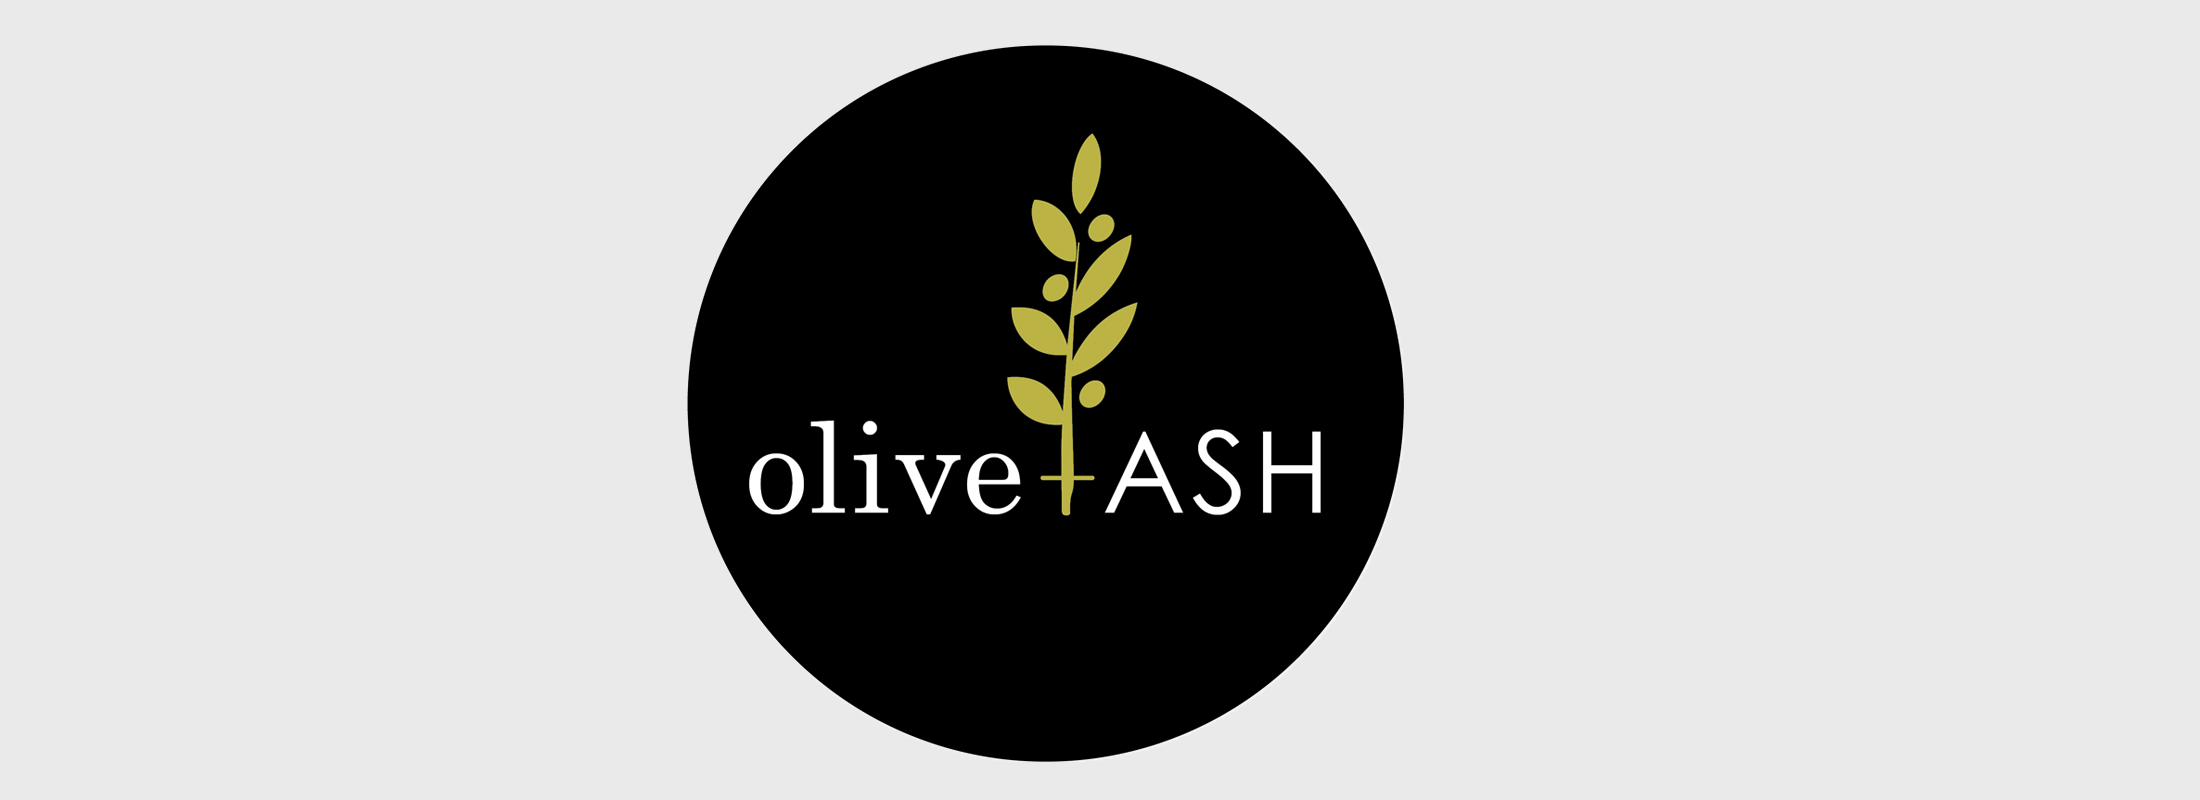 Olive and Ash logo